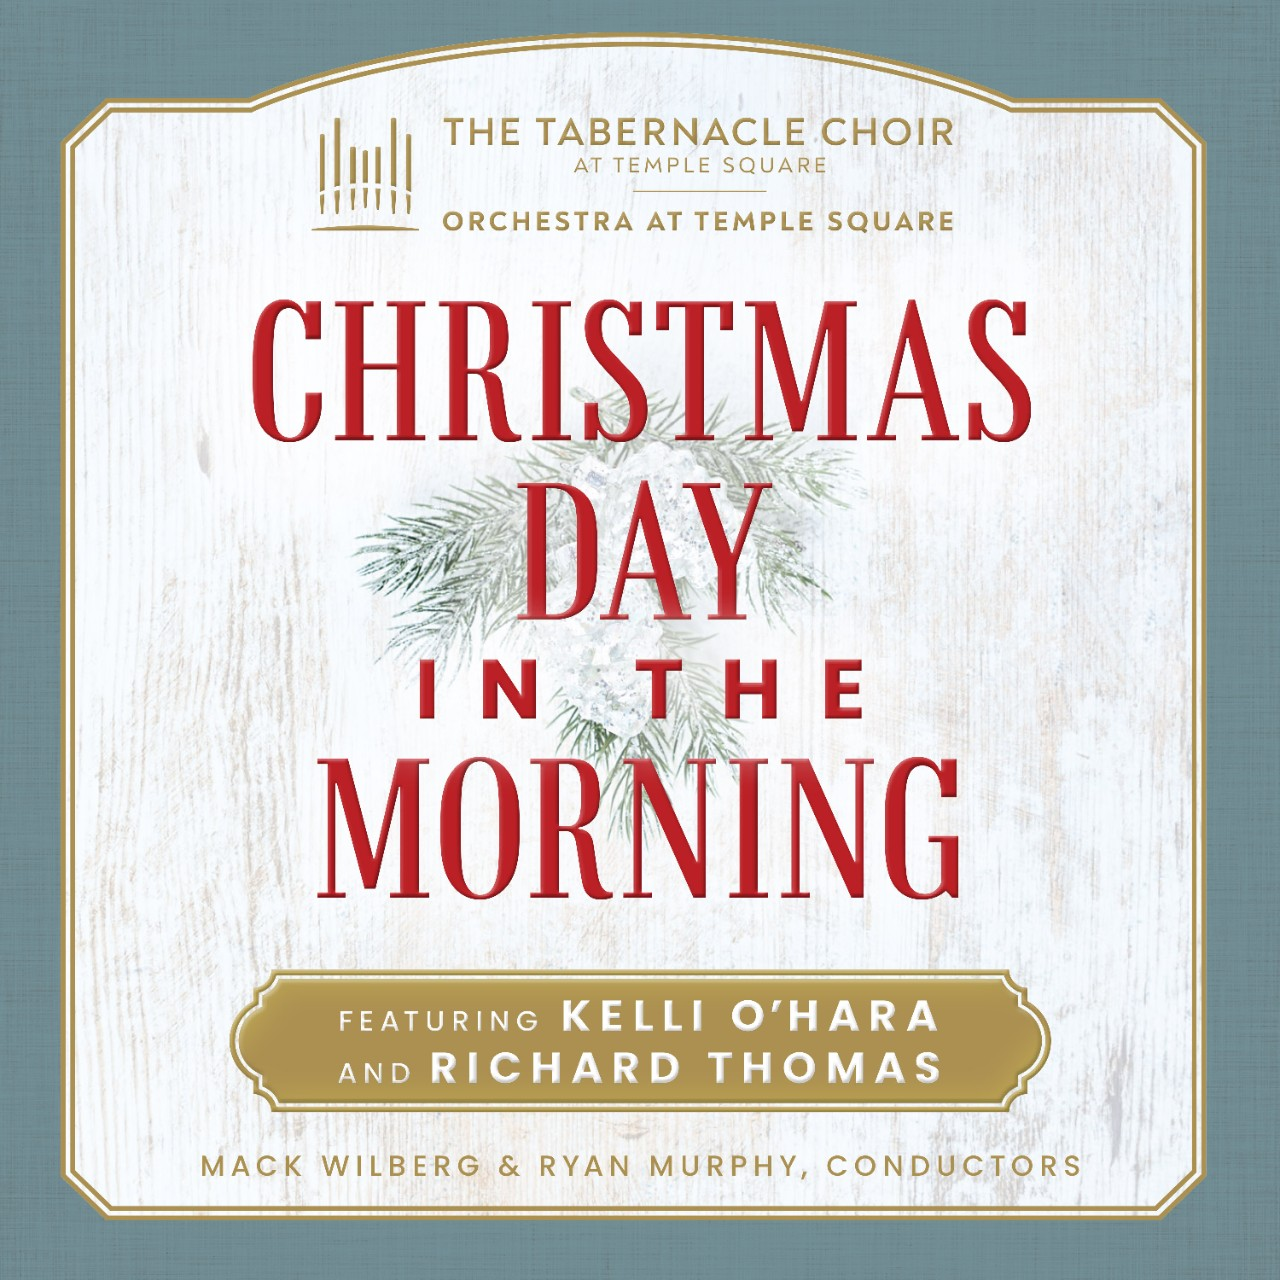 Christmas_Day_in_the_Morning_CD_Cover_sq.jpg